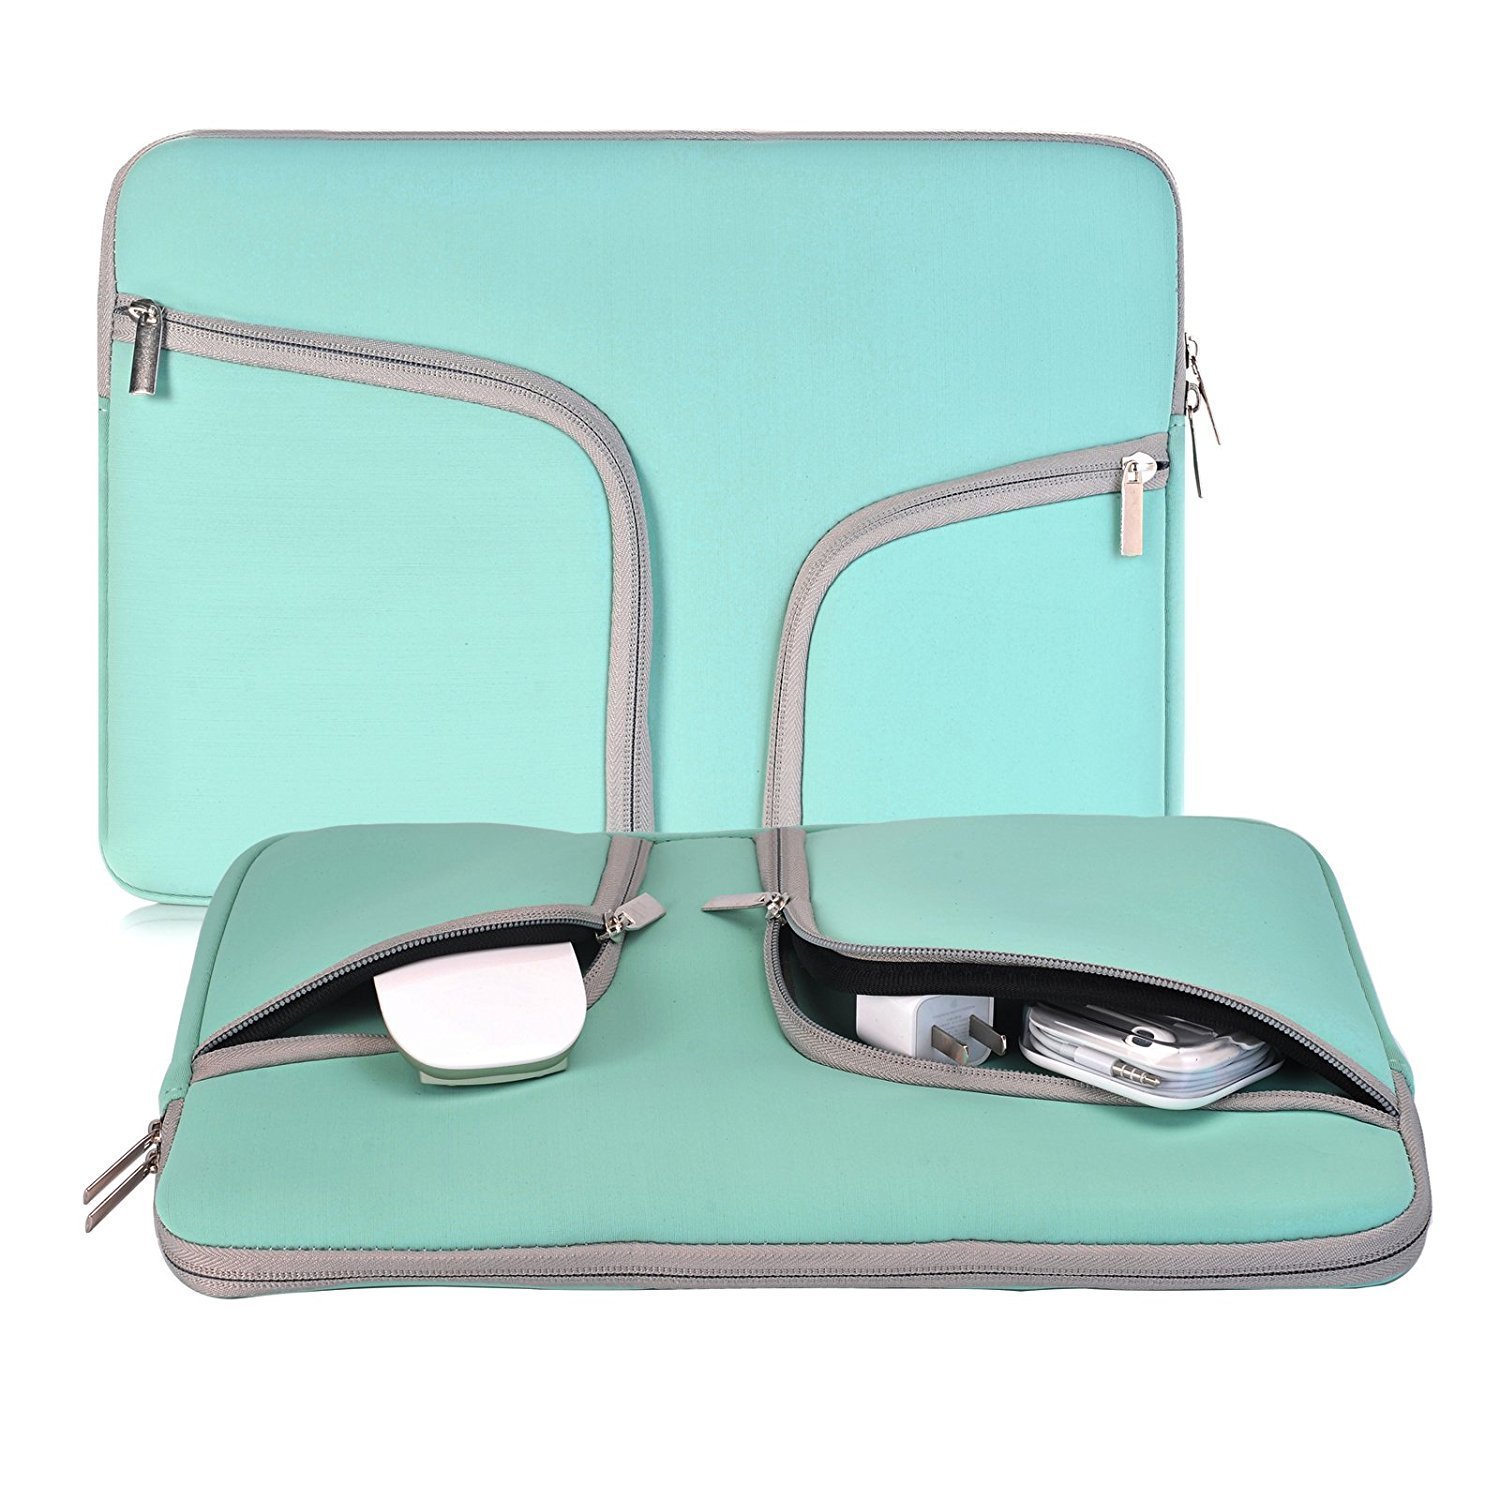 a16159ffa238 Buy Egiant Laptop Sleeve Case Waterproof Protective Bag for 11.6 ...